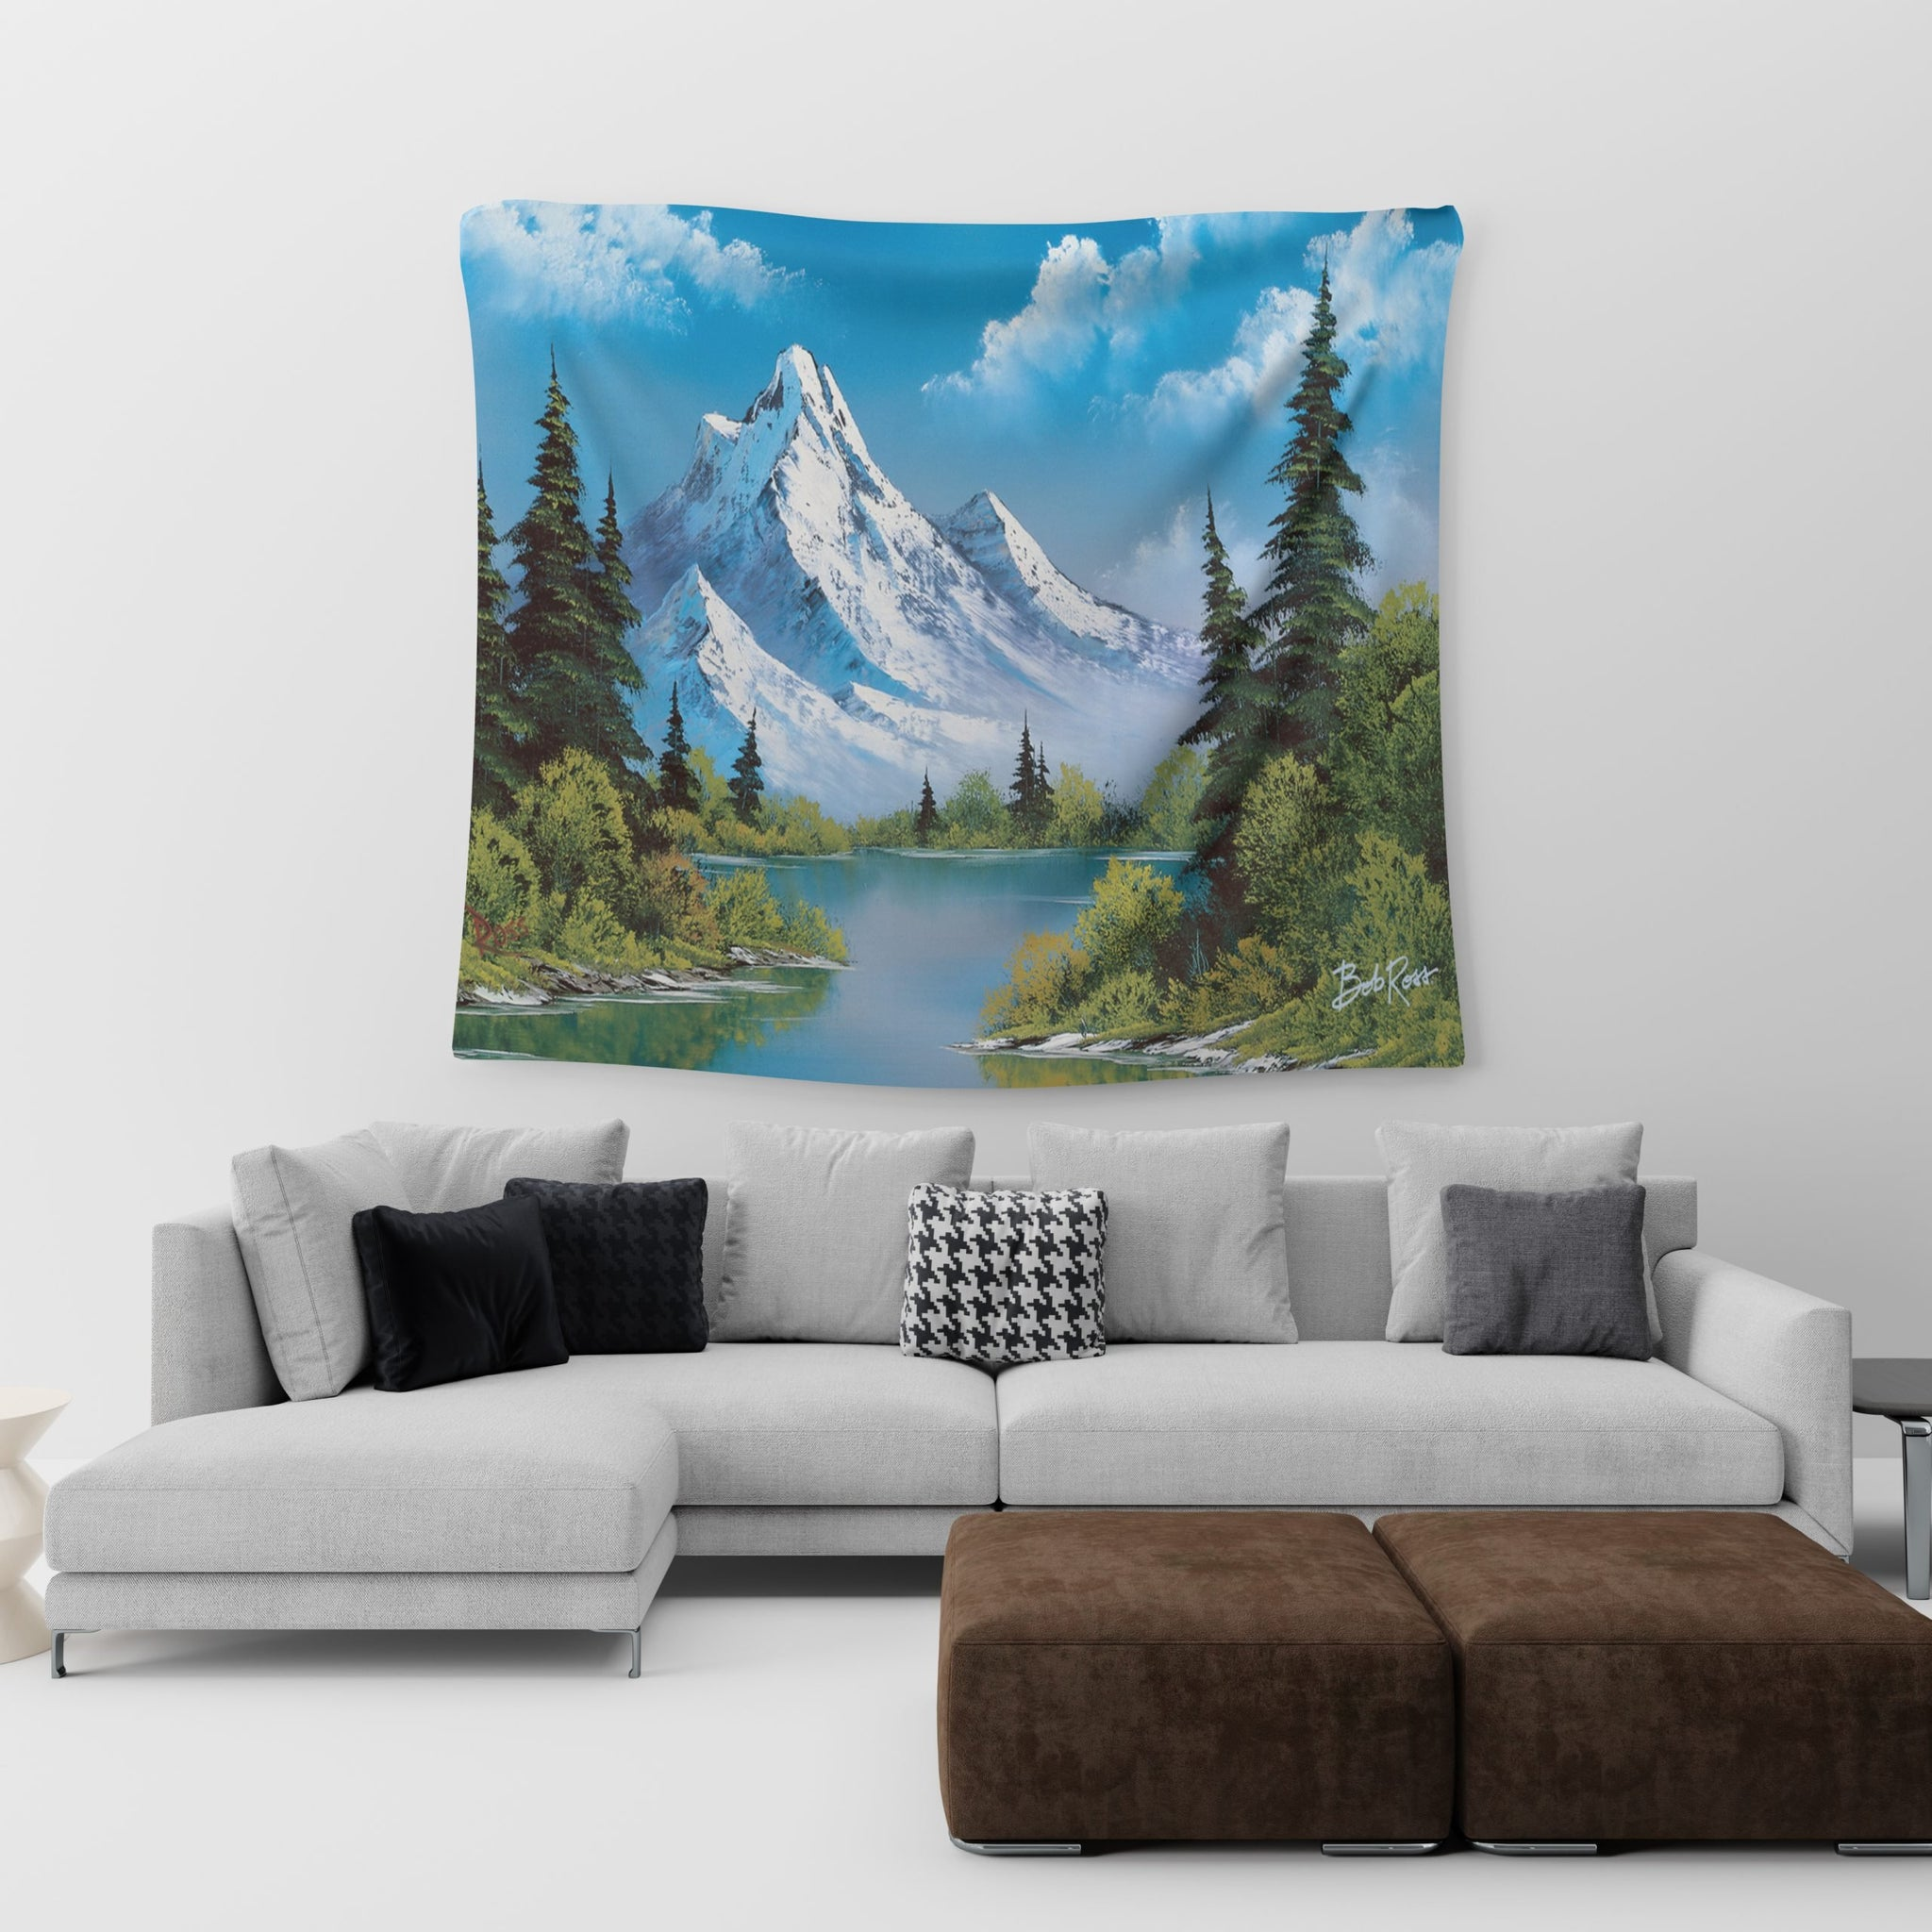 Bob Ross mountain tapestry hanging in a living room